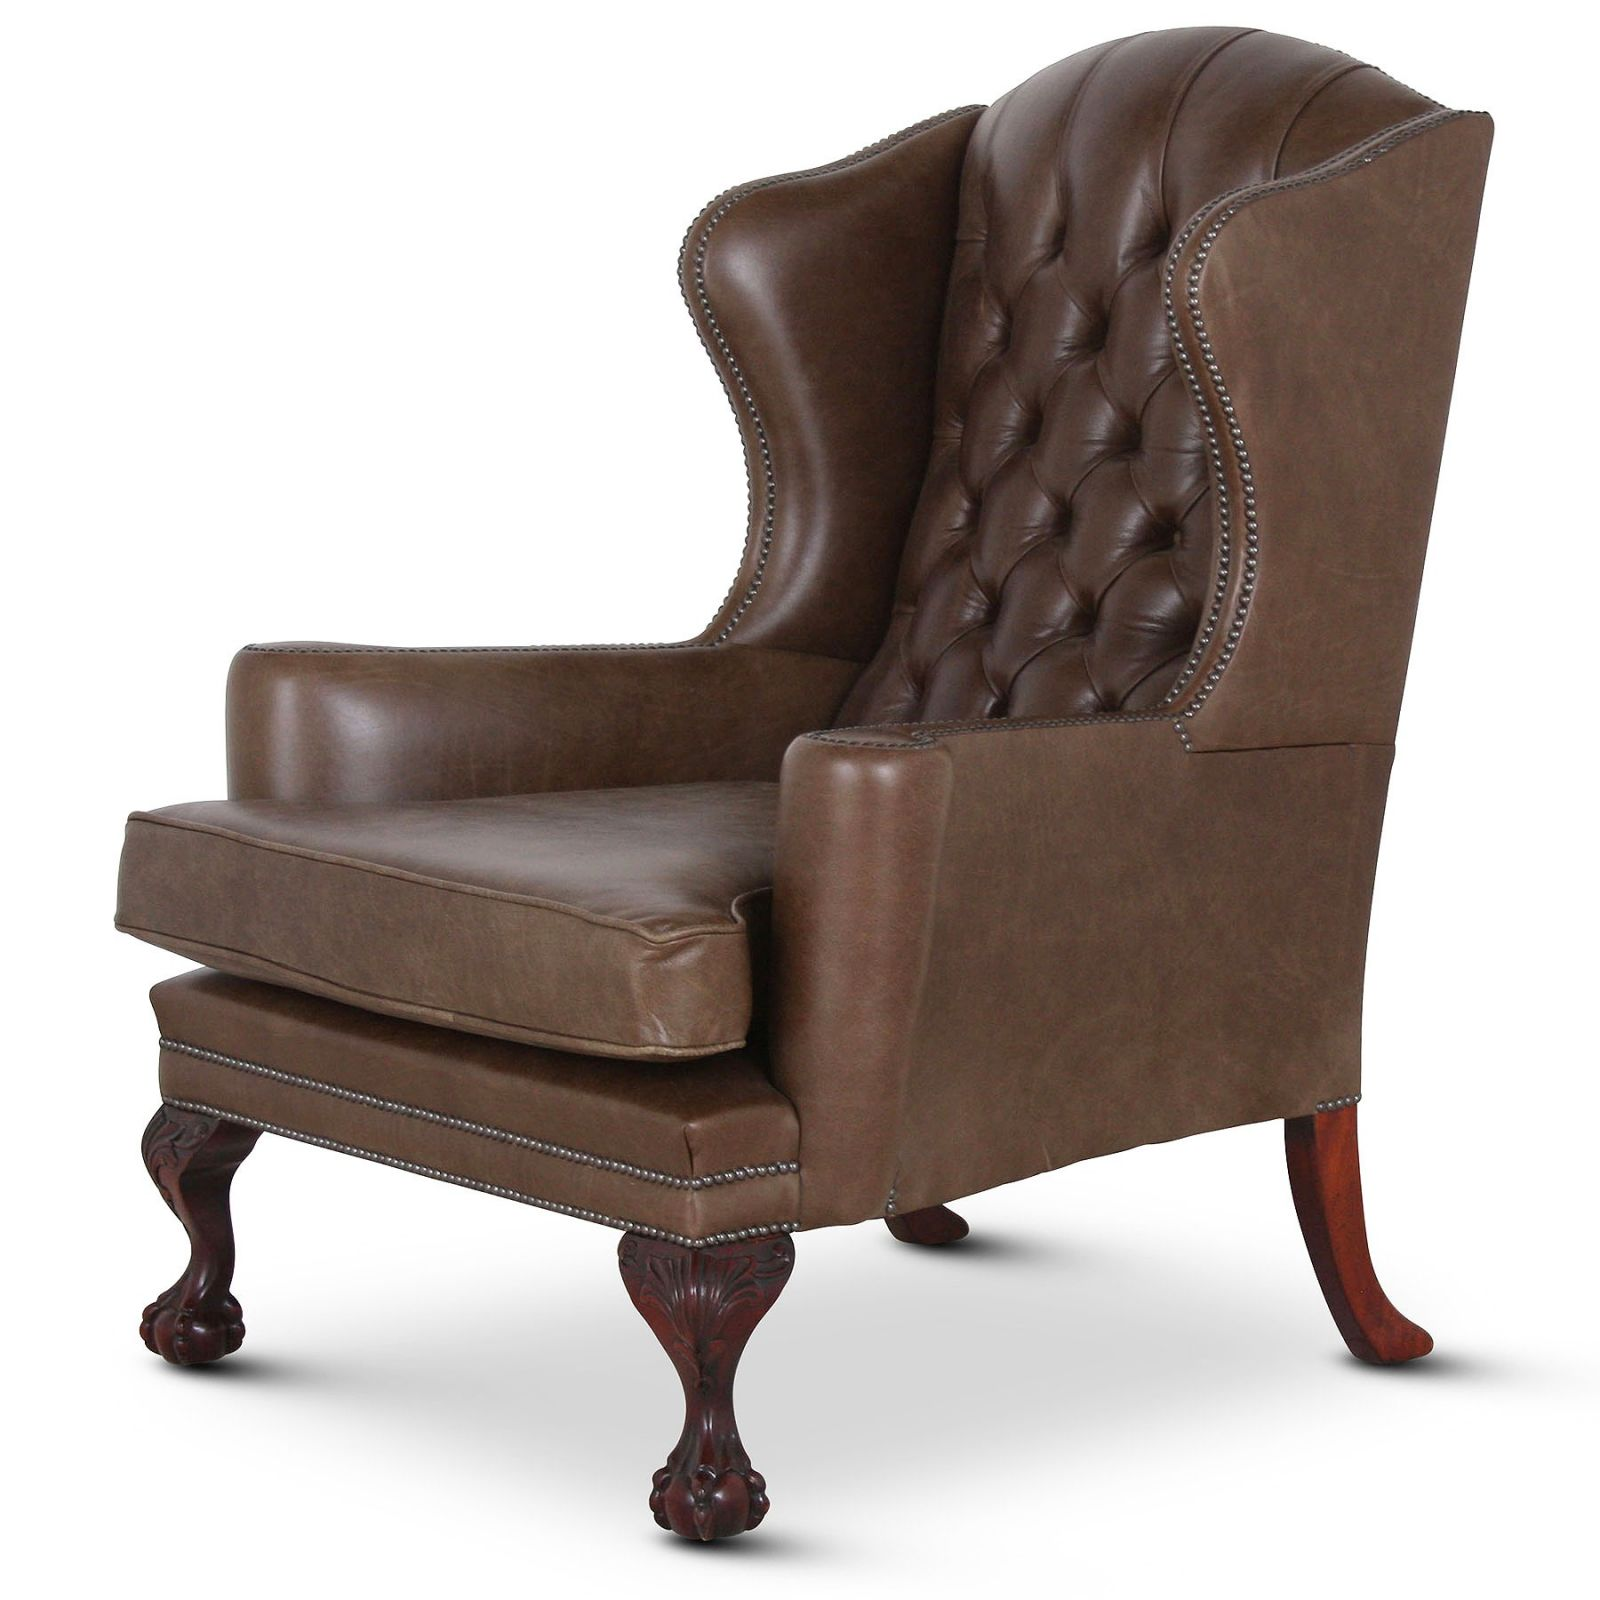 Oversized Mebury wing chair in olive leather